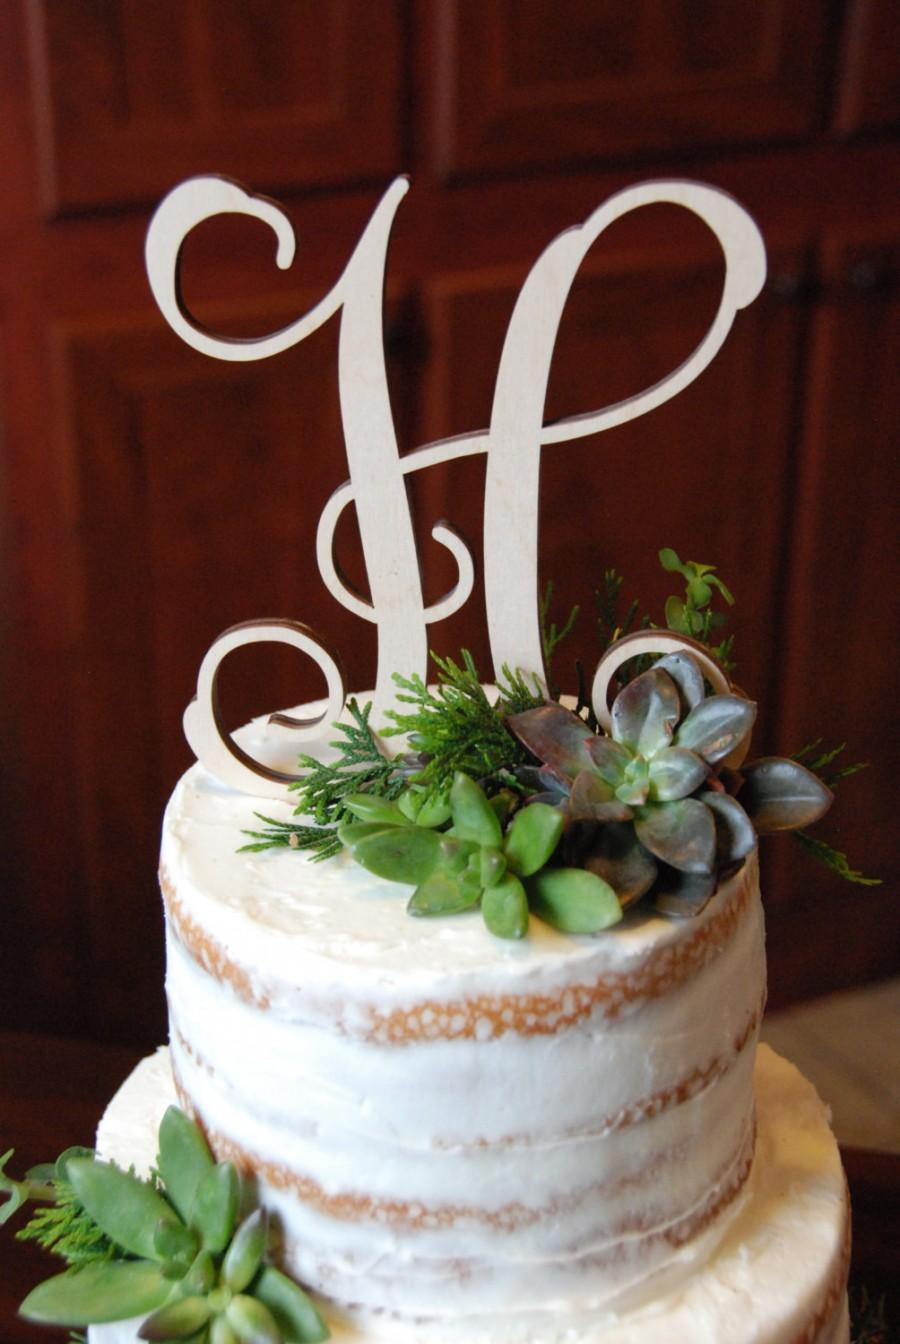 Mariage - Personalized Cake Topper - Bride's Cake - Initial Cake Topper - Painted